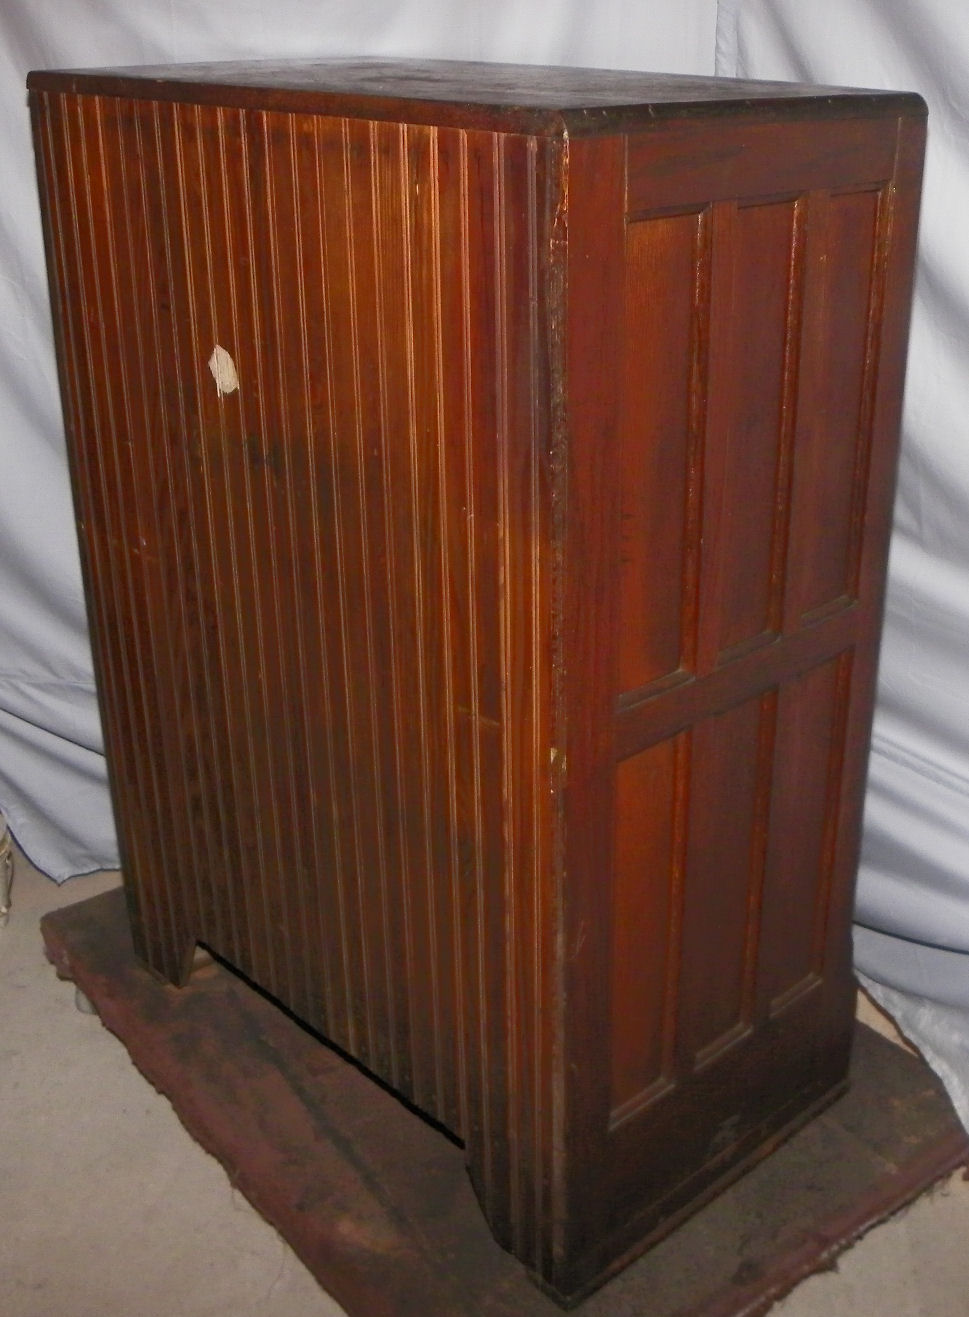 Kitchen Cabinets Metal Old Bargain John's Antiques » Blog Archive Antique Oak Ice Box